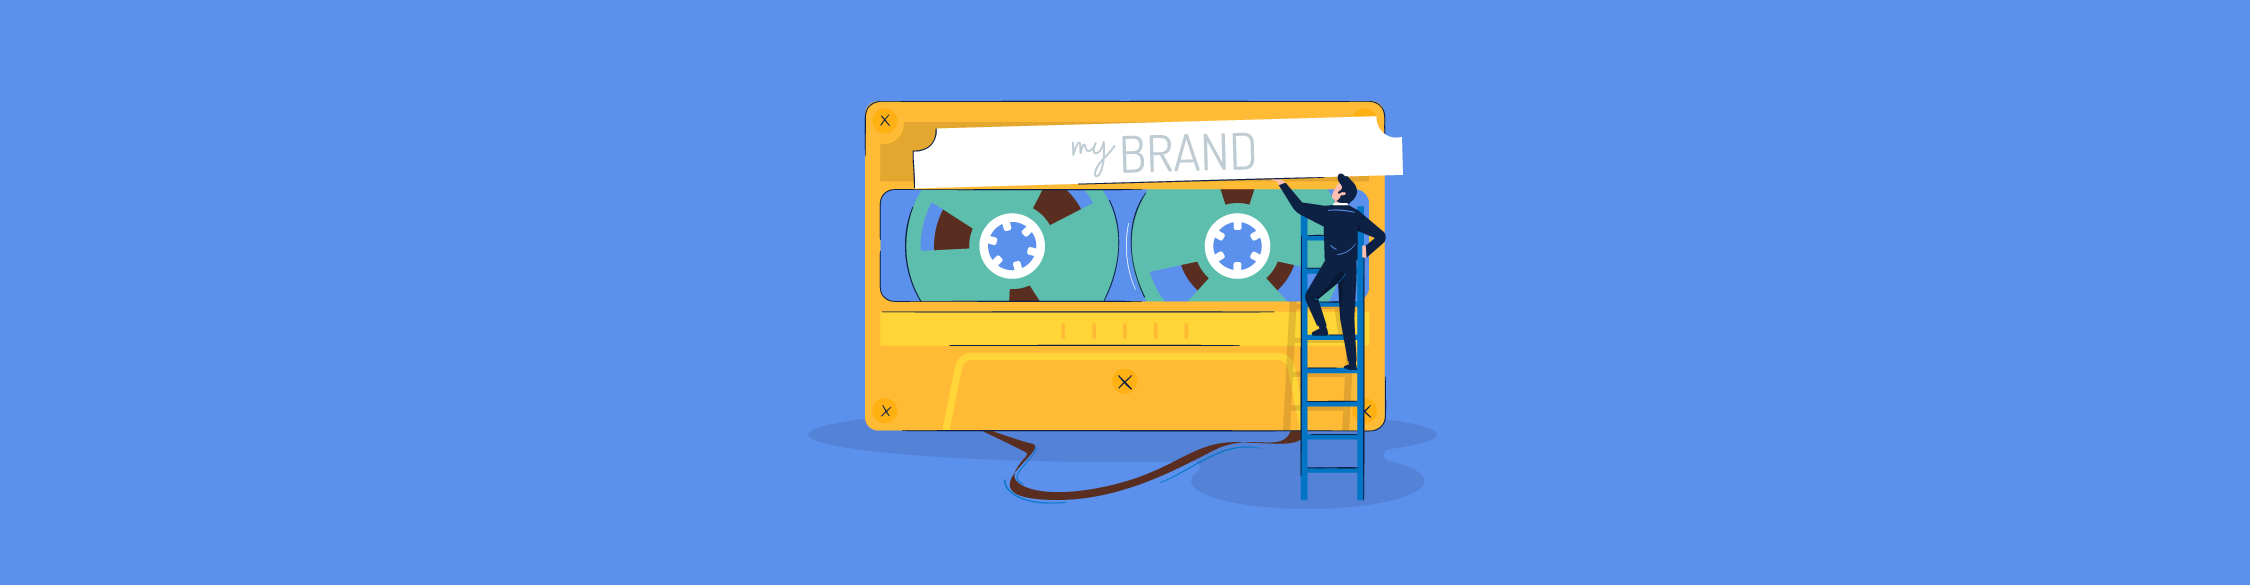 "Illustration of a man on a ladder adding a ""My Brand"" sticker to a cassette tape"